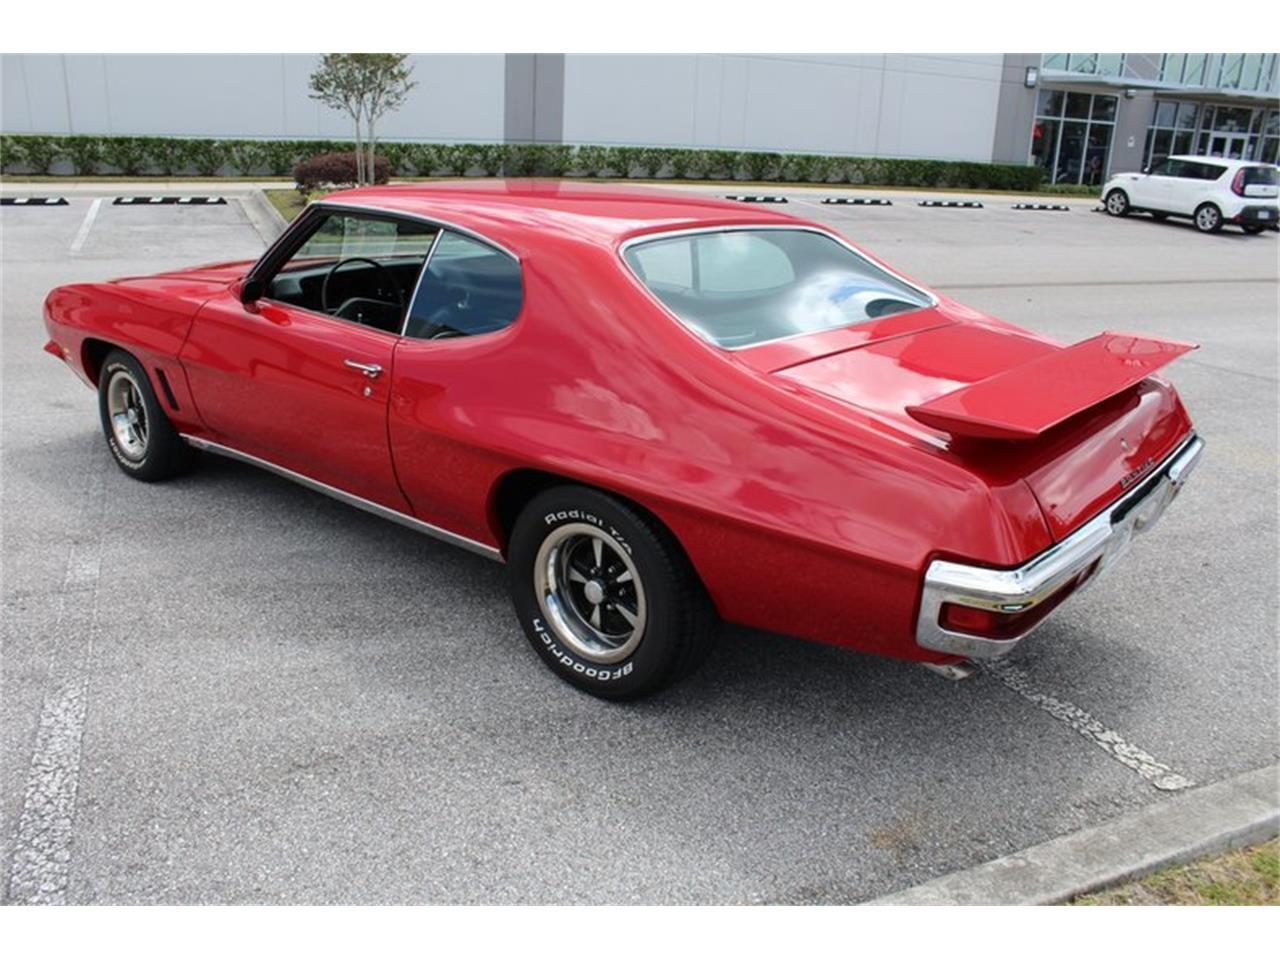 Large Picture of 1972 LeMans located in Florida - $19,500.00 Offered by Classic Cars of Sarasota - PUAK